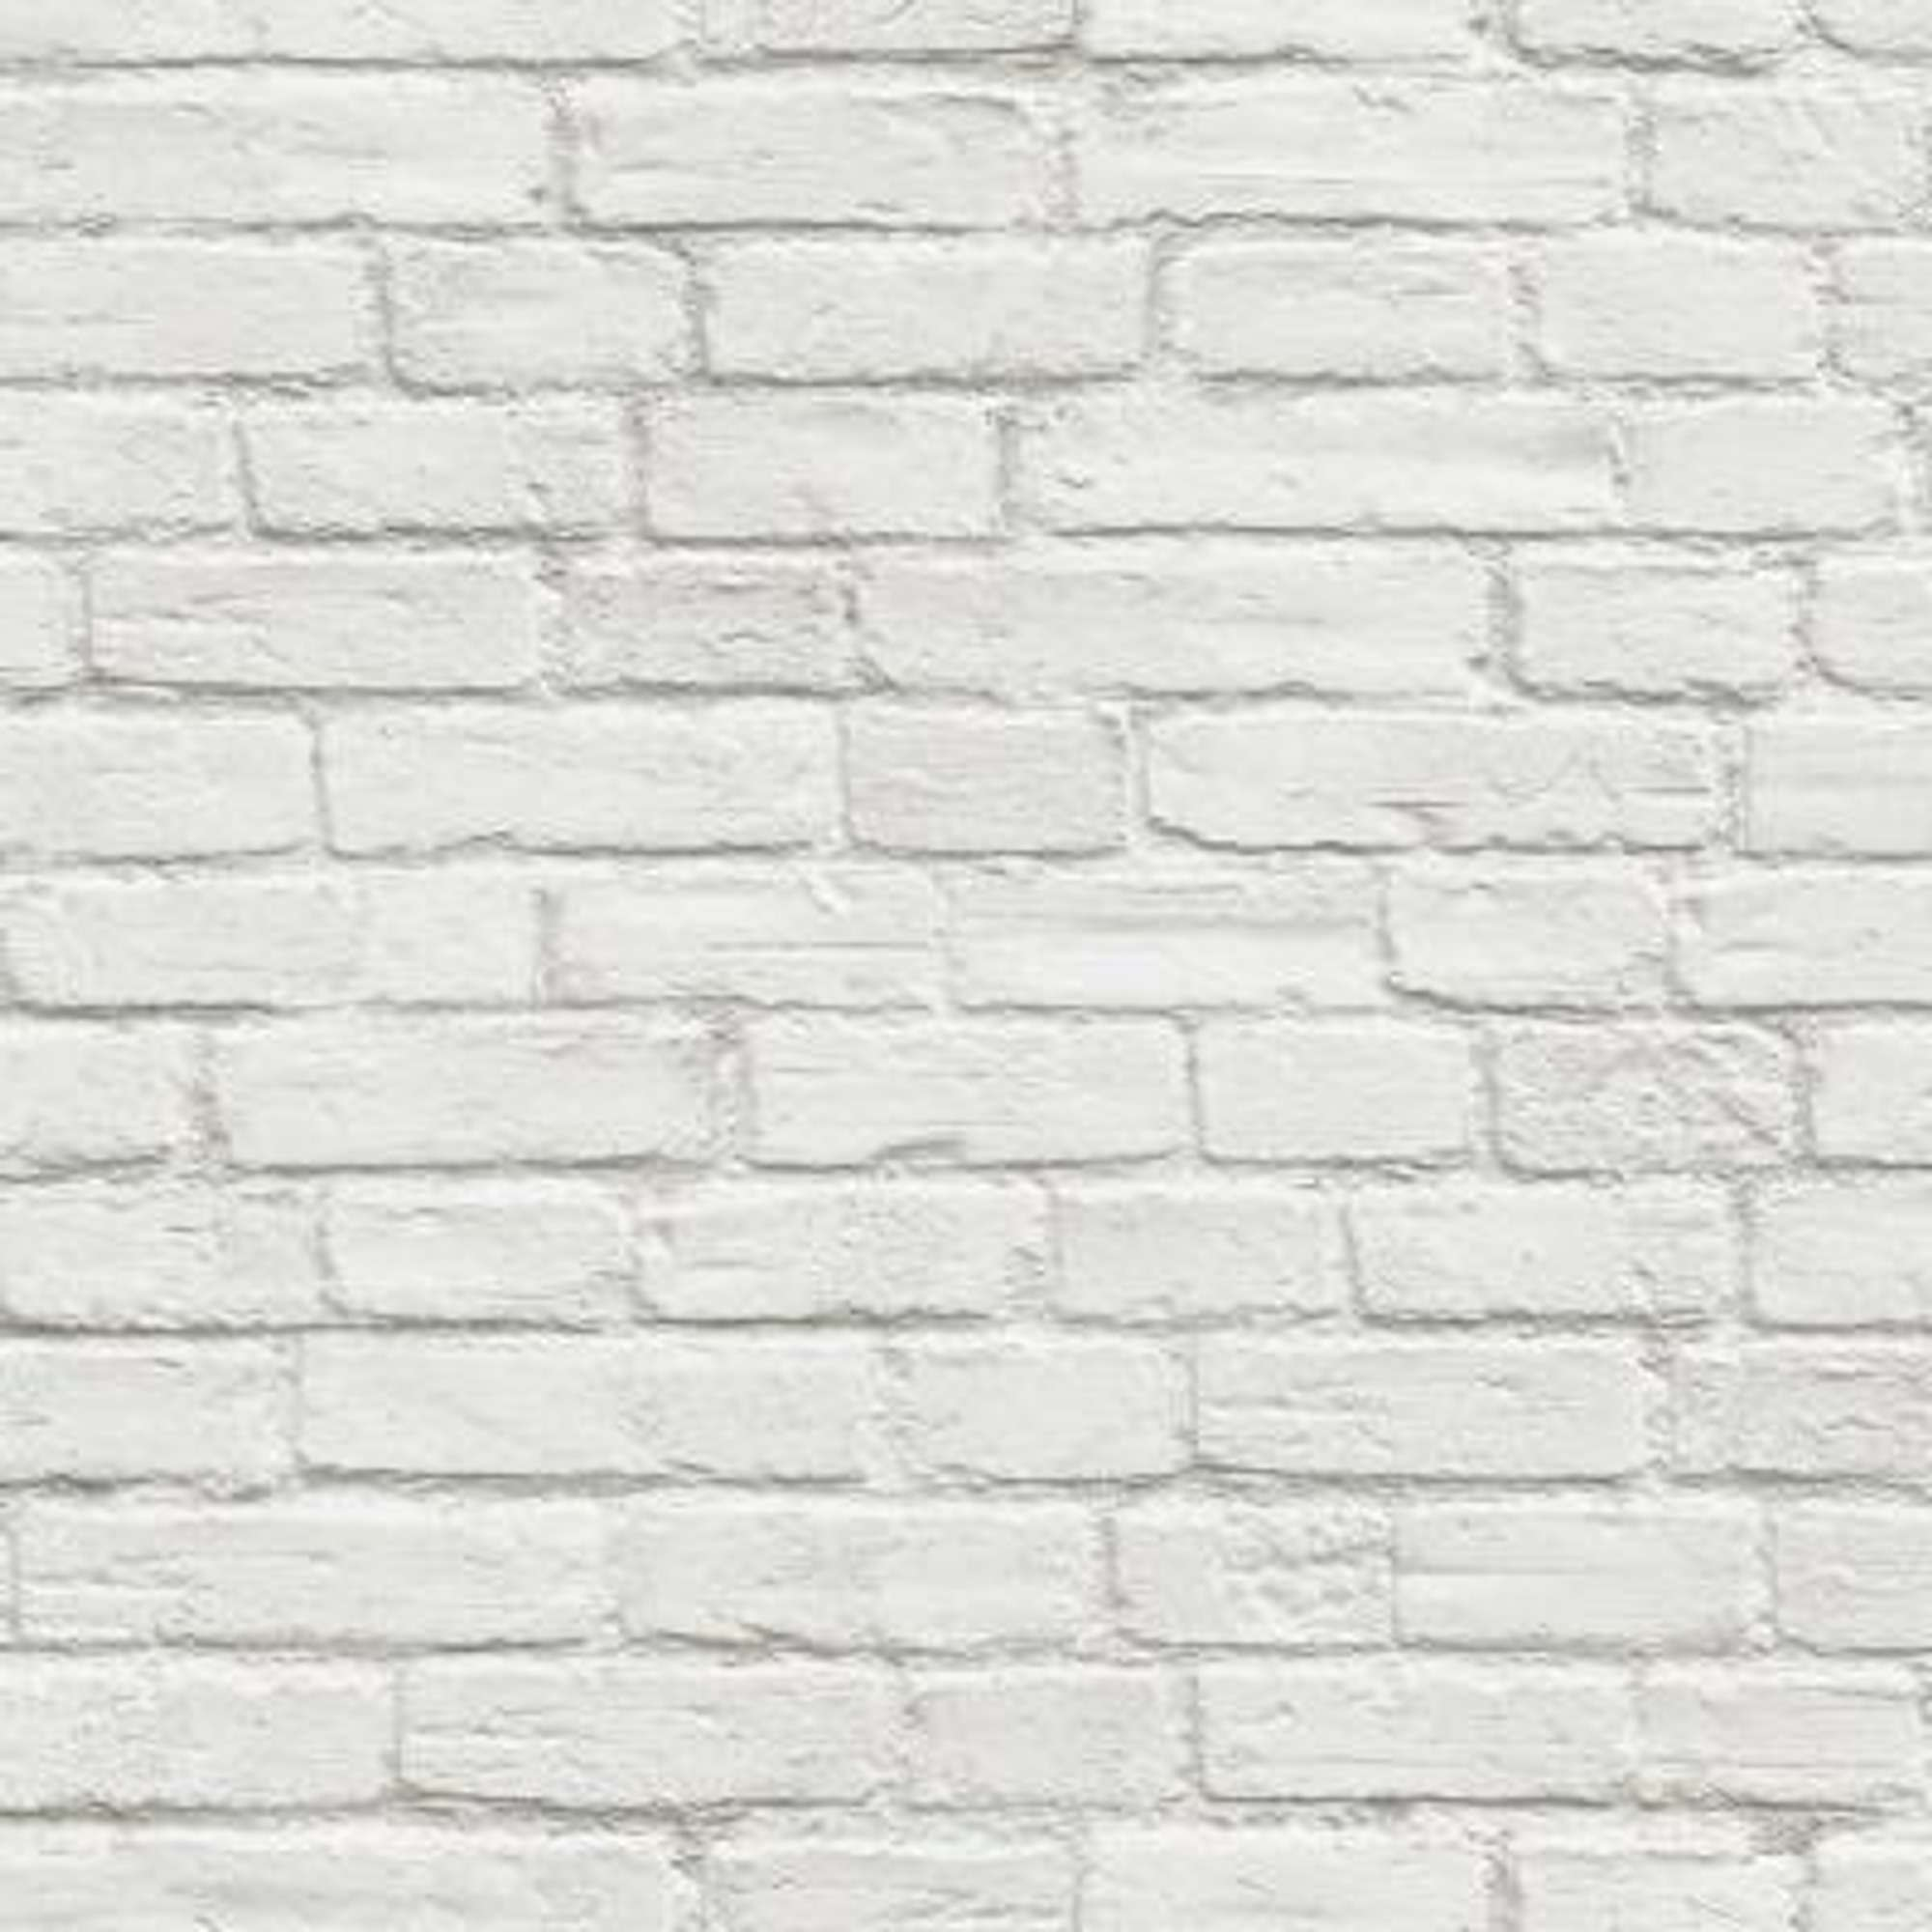 Nextwall Vintage White Brick Peel And Stick Wallpaper Loveseat Online Auctions San Diego